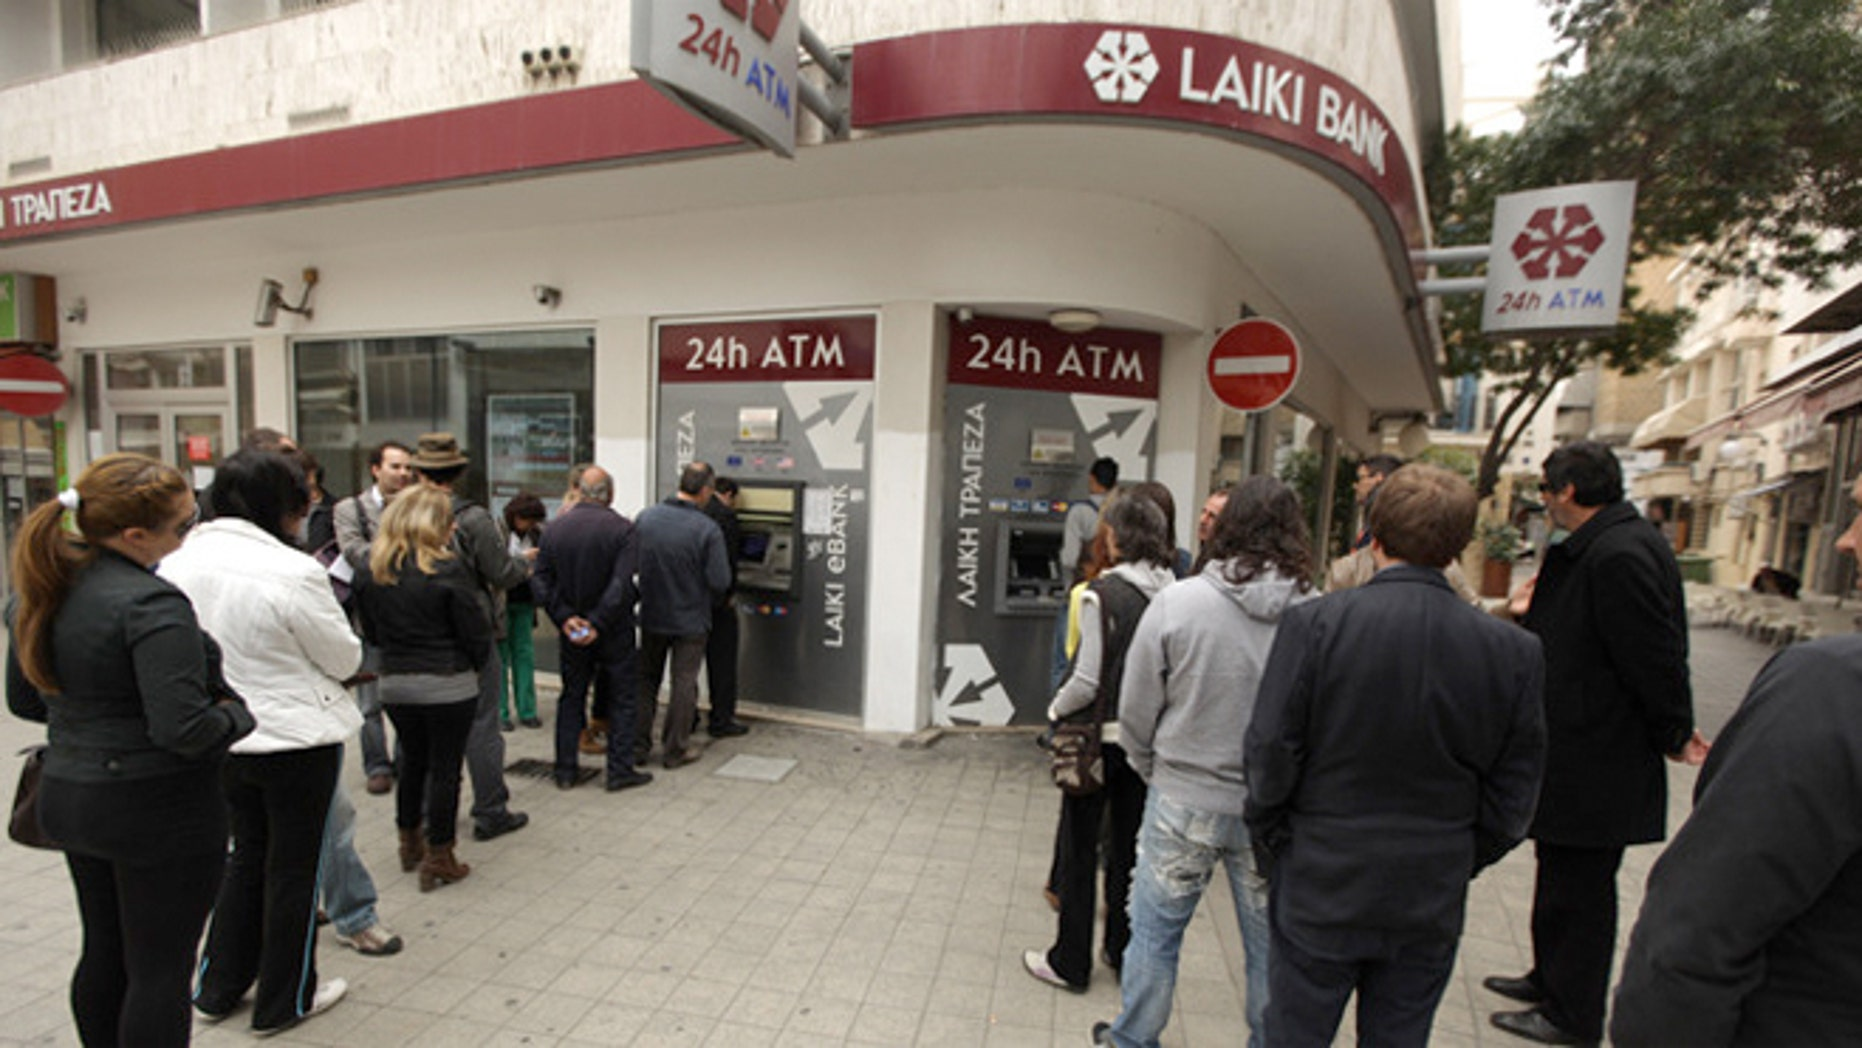 People in Cyrpus wait in line to withdraw money from an ATM of a Laiki Bank in the old city of the capital, Nicosia.